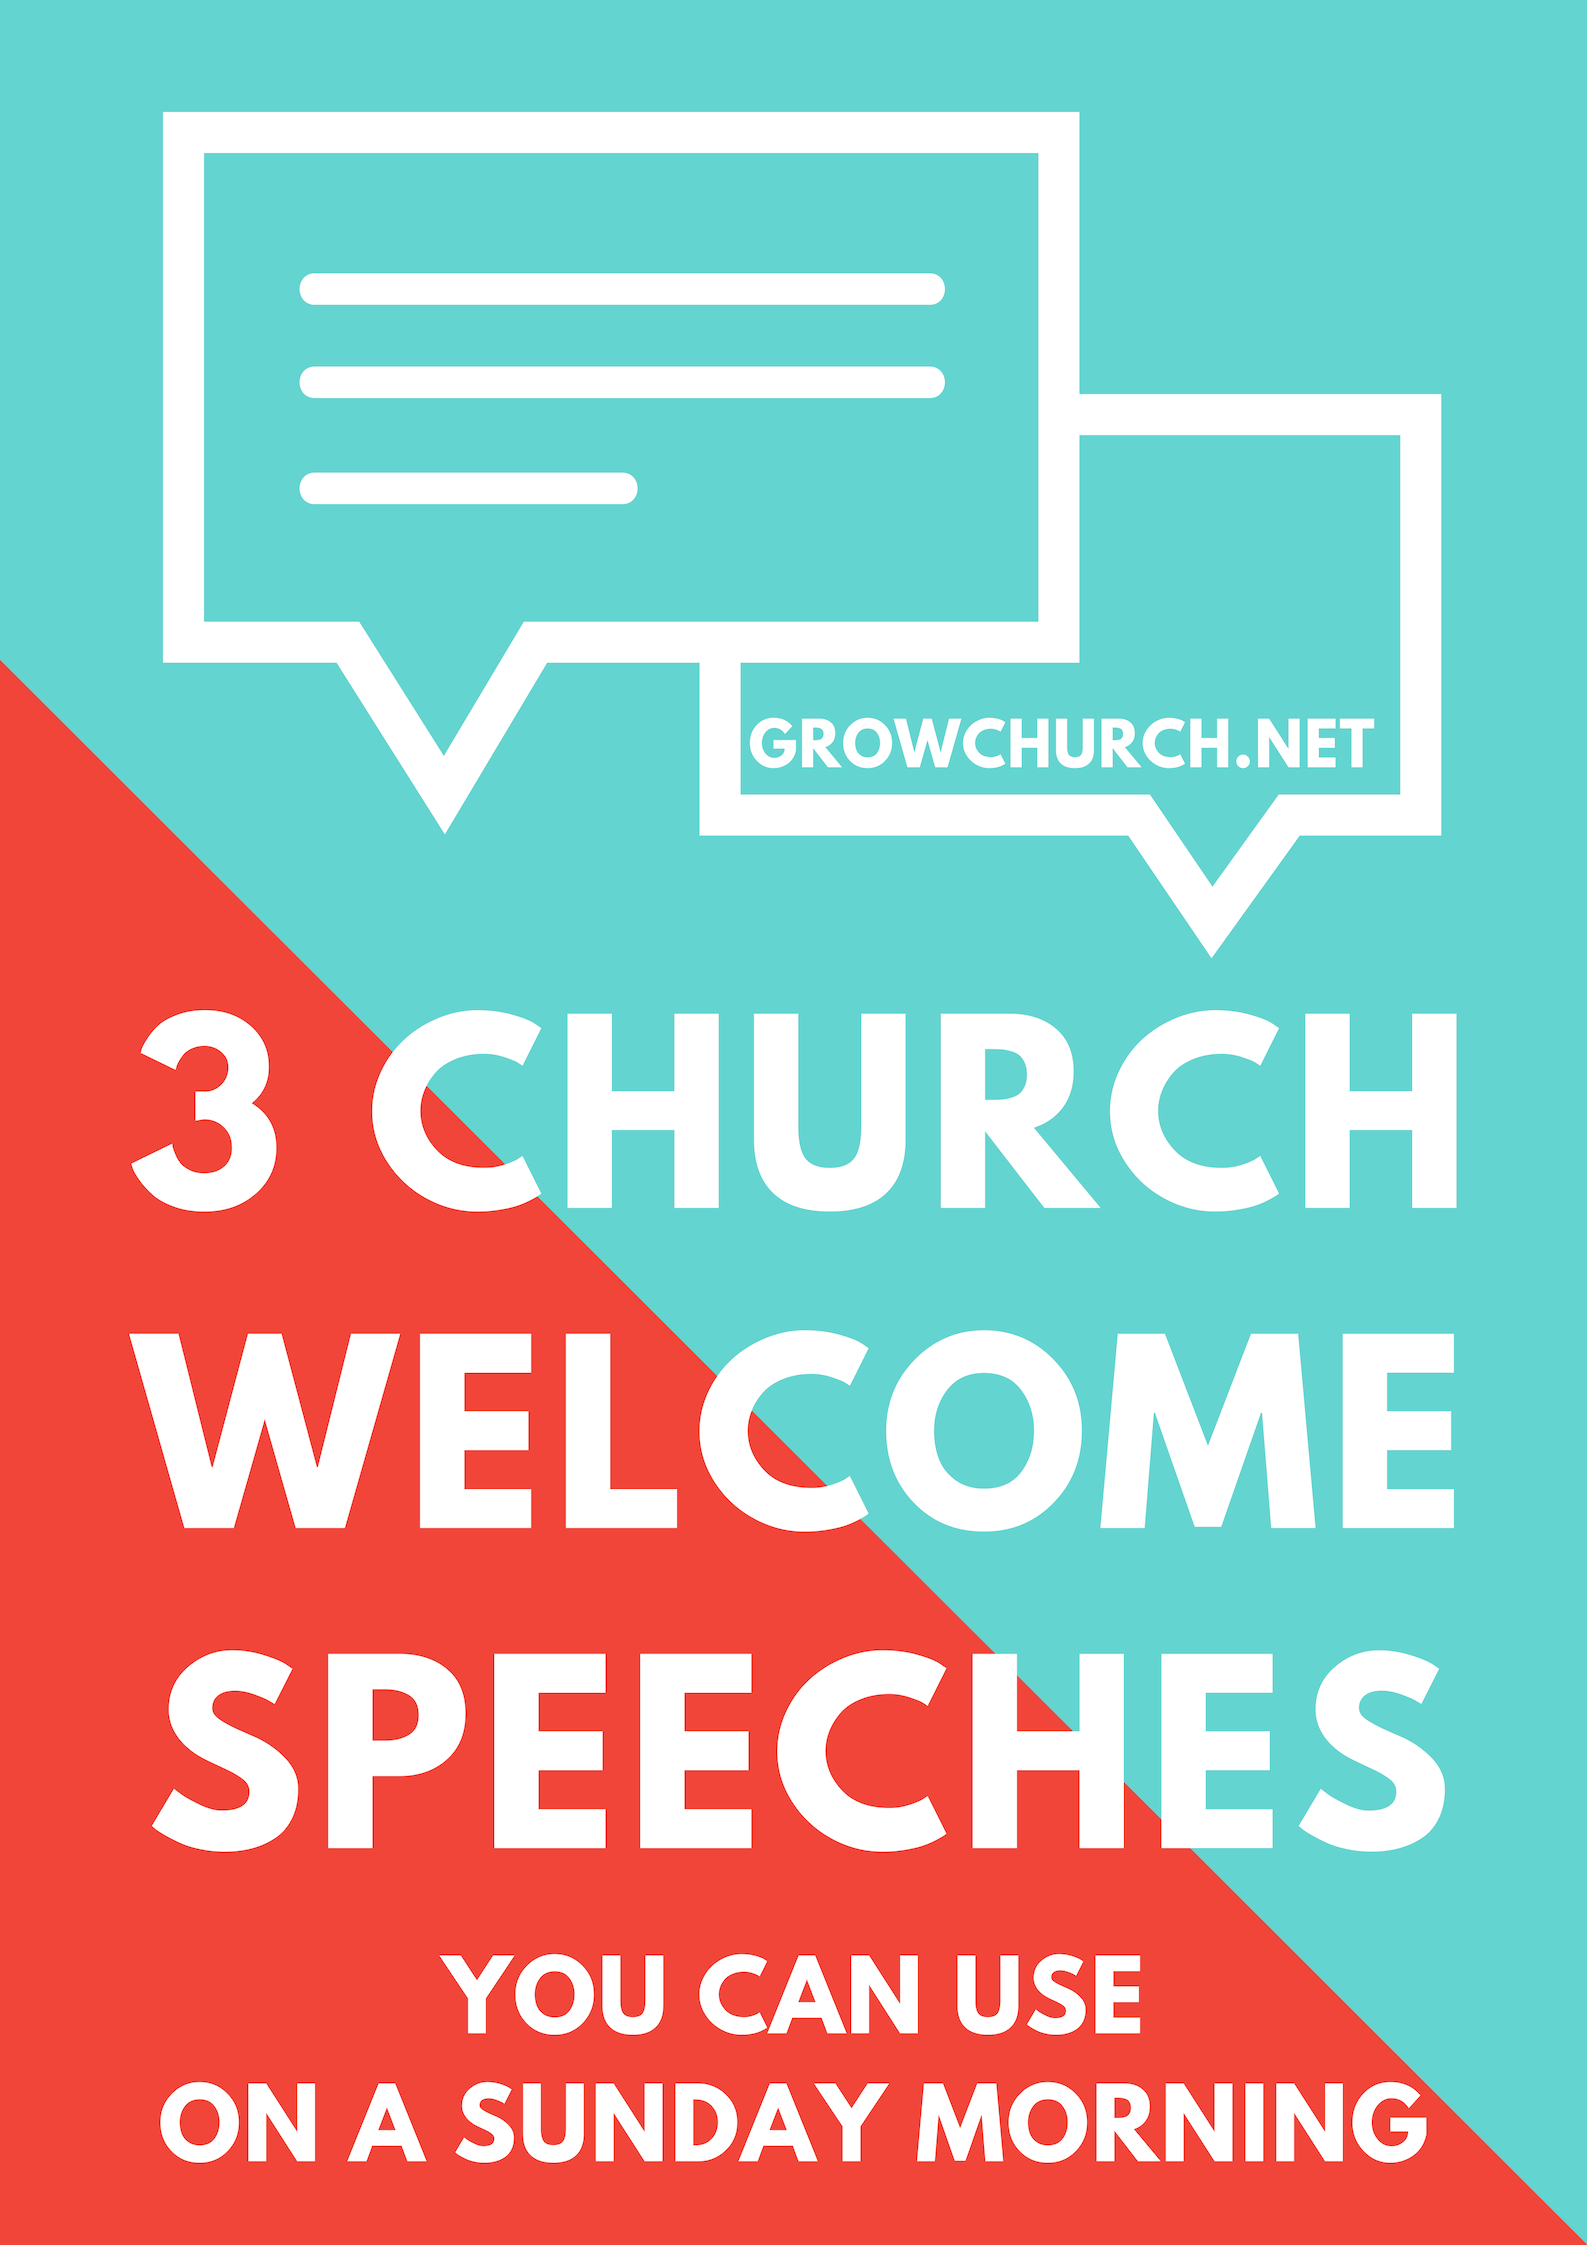 3 Church Welcome Speeches You Can Use To Start Strong [FREE]